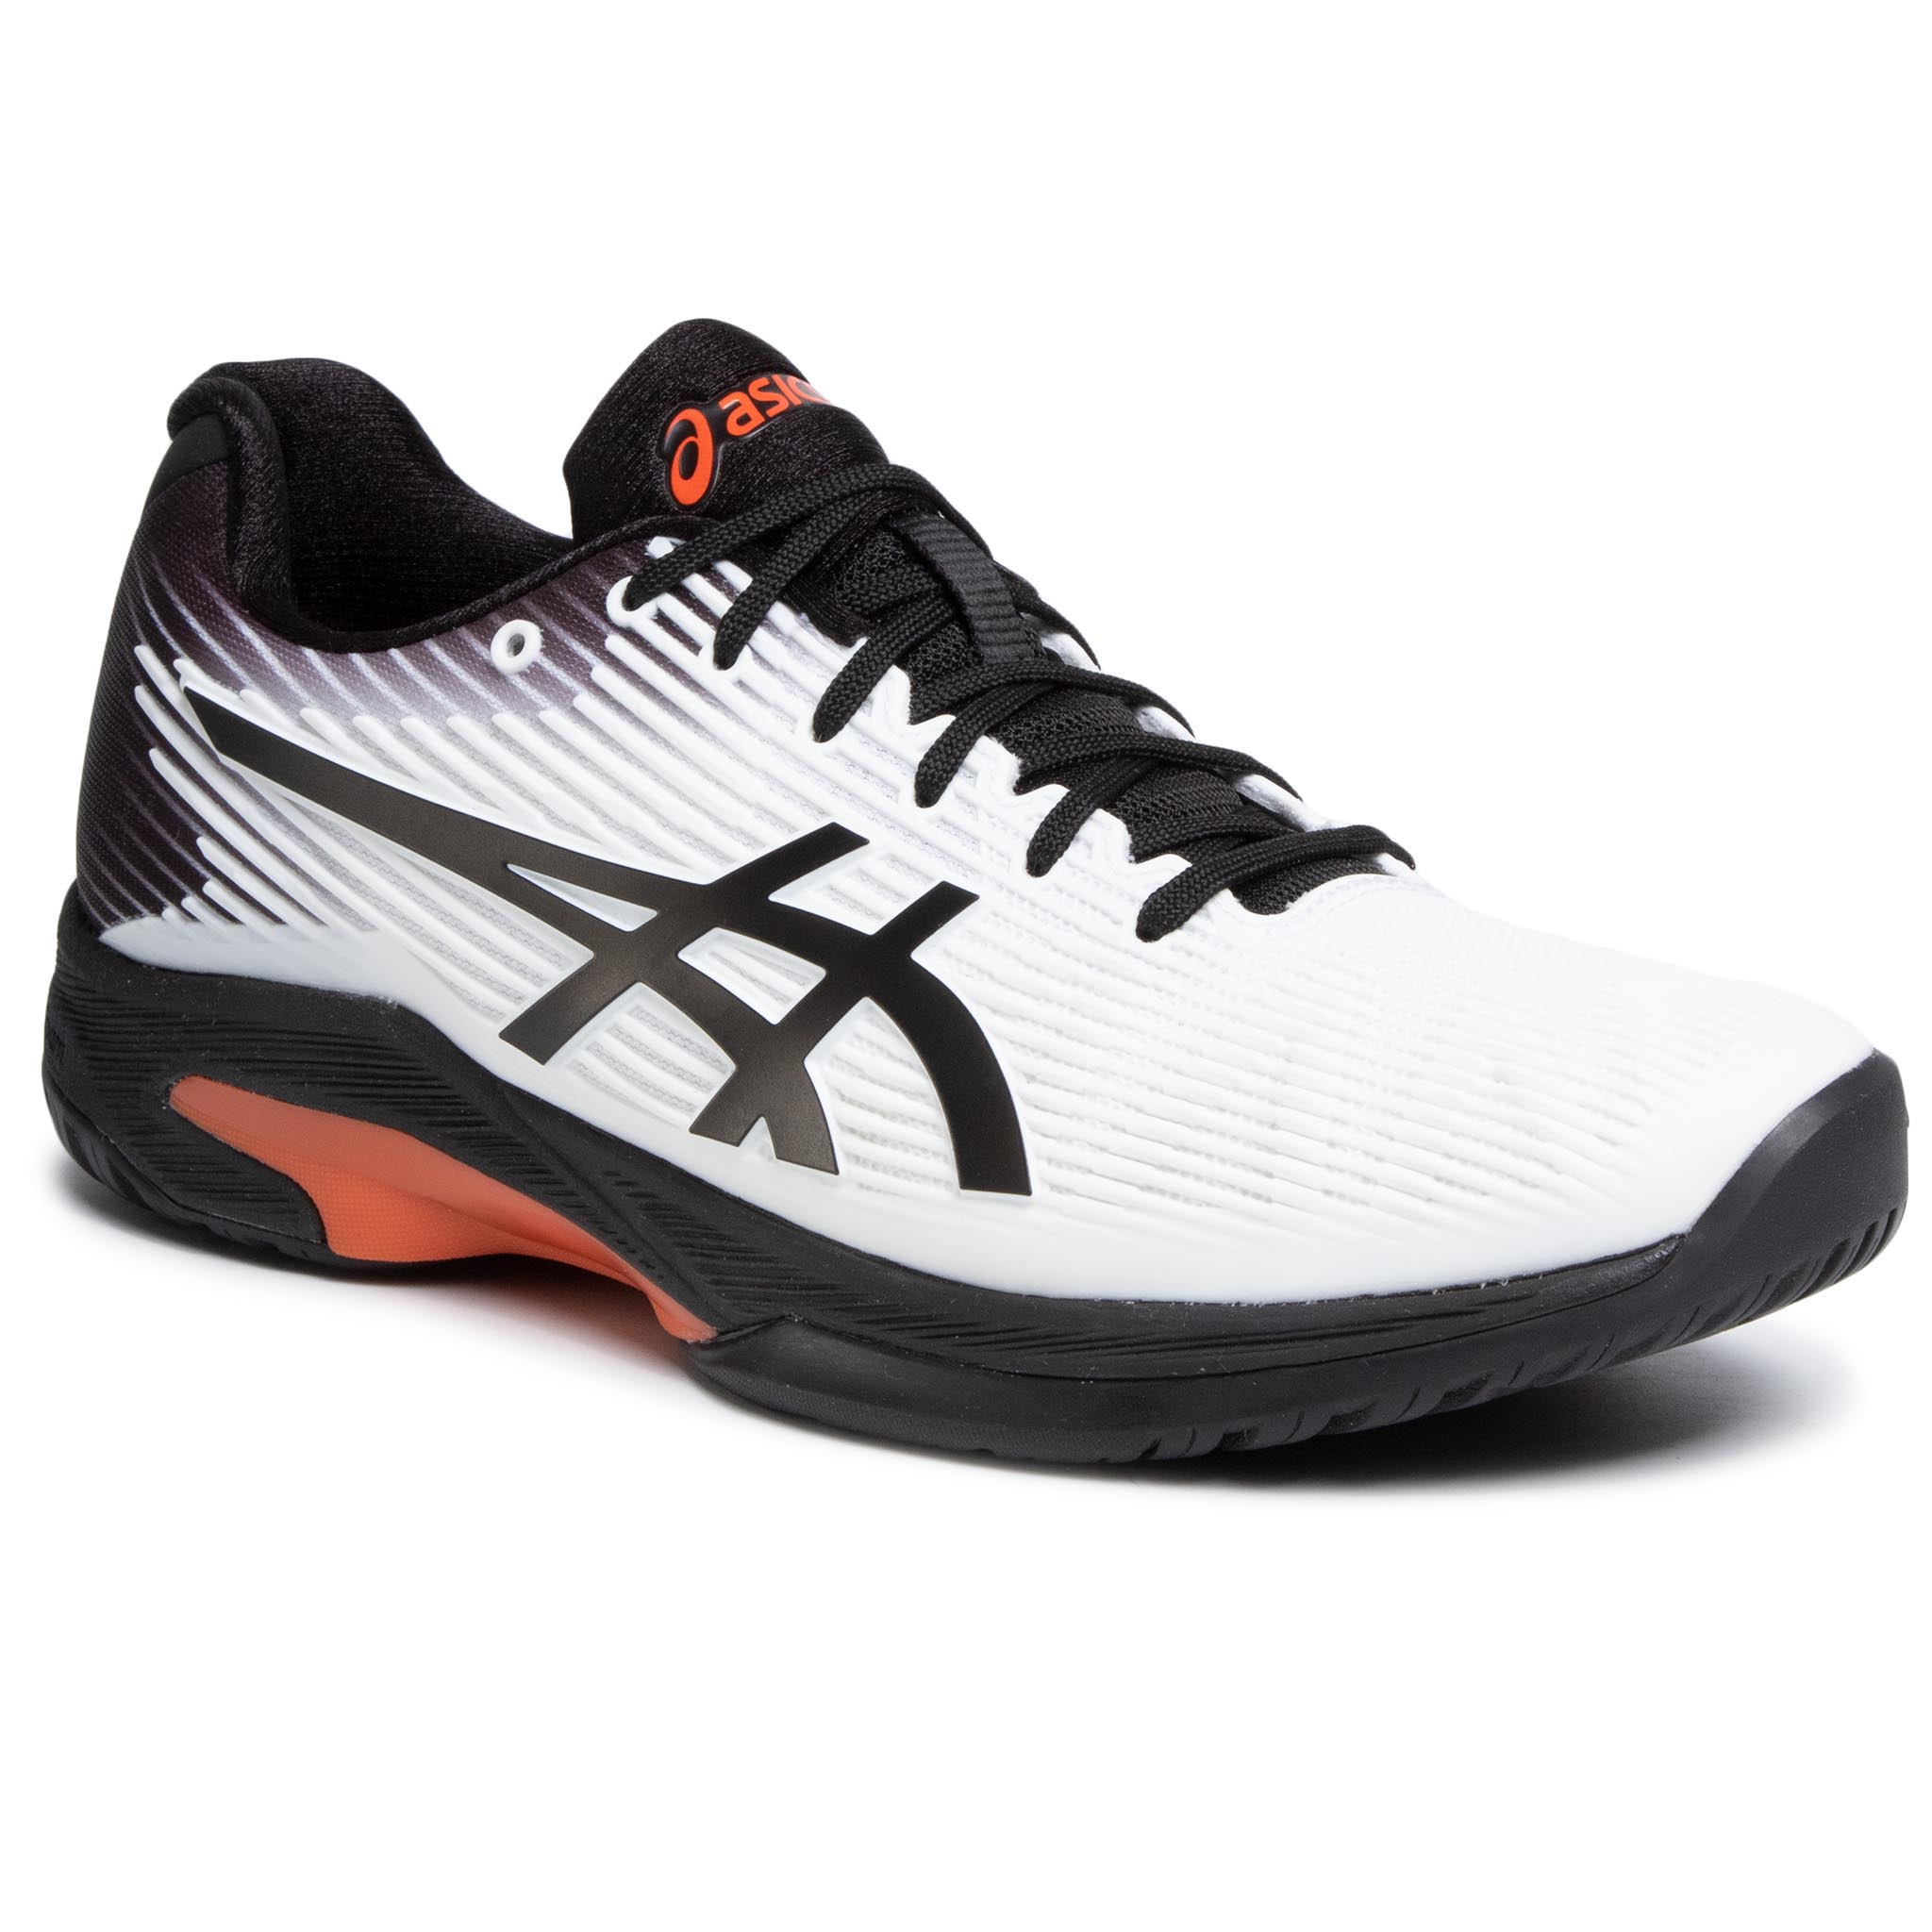 Pantofi Asics - Solution Speed Ff 1041a003 White/Black 102 imagine epantofi.ro 2021